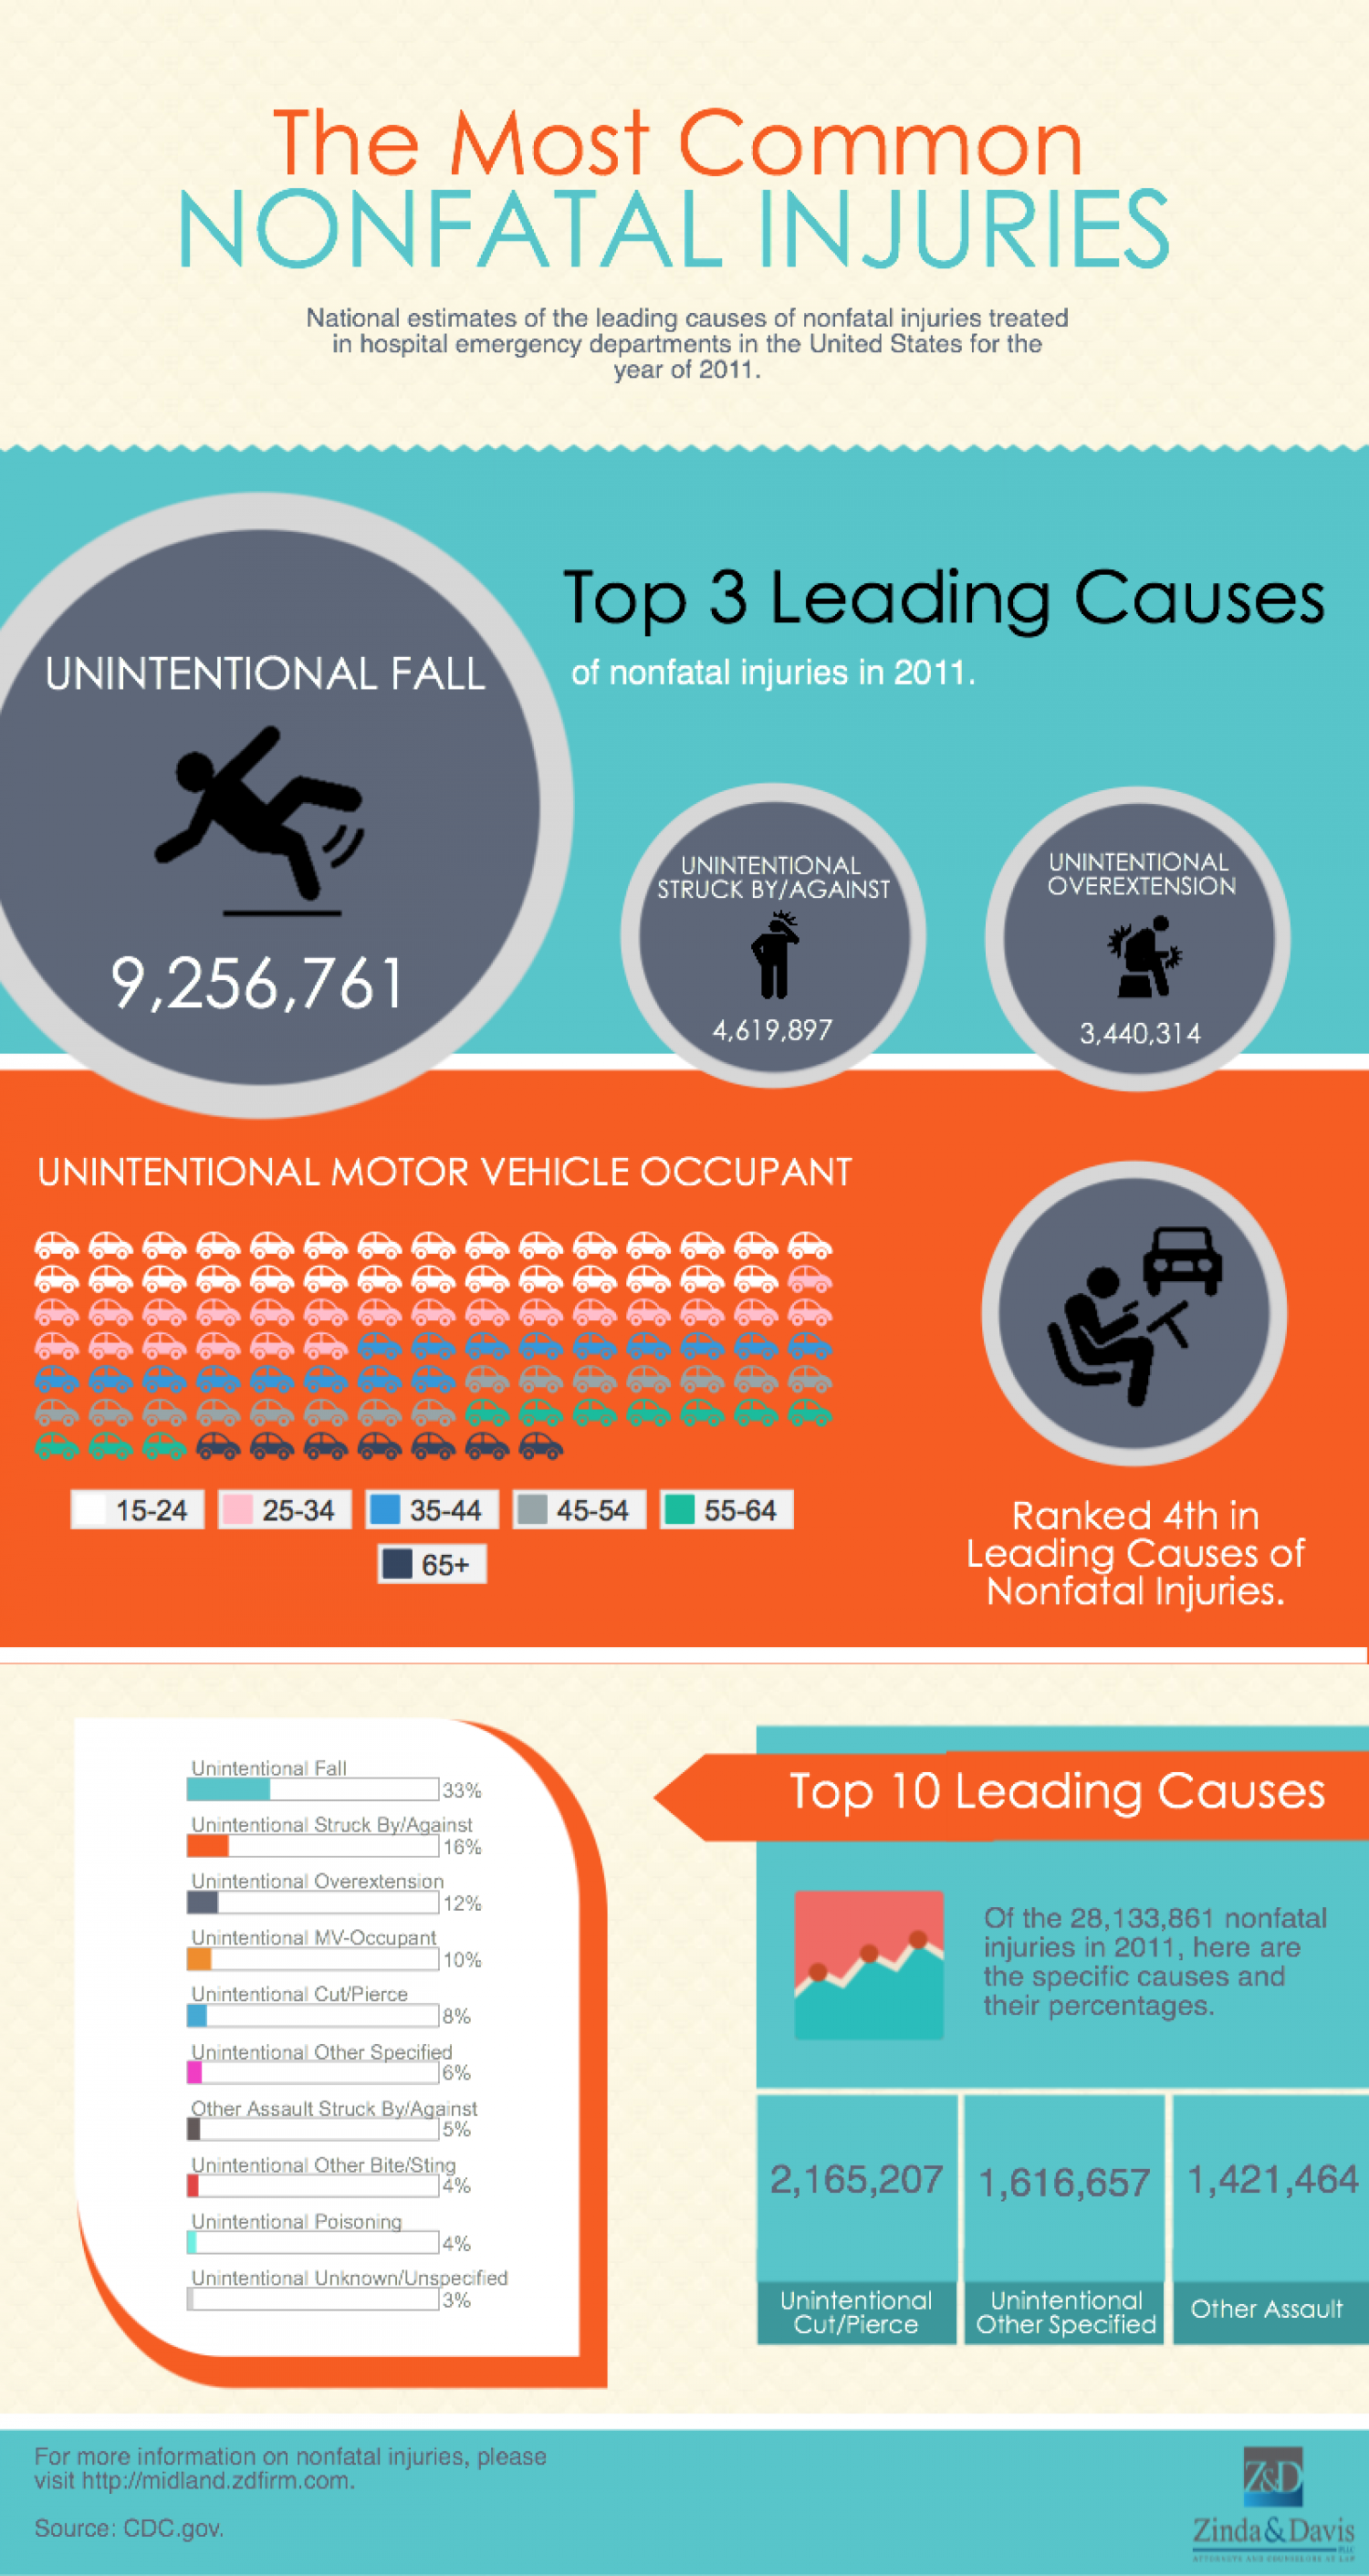 The Most Common Nonfatal Injuries Infographic